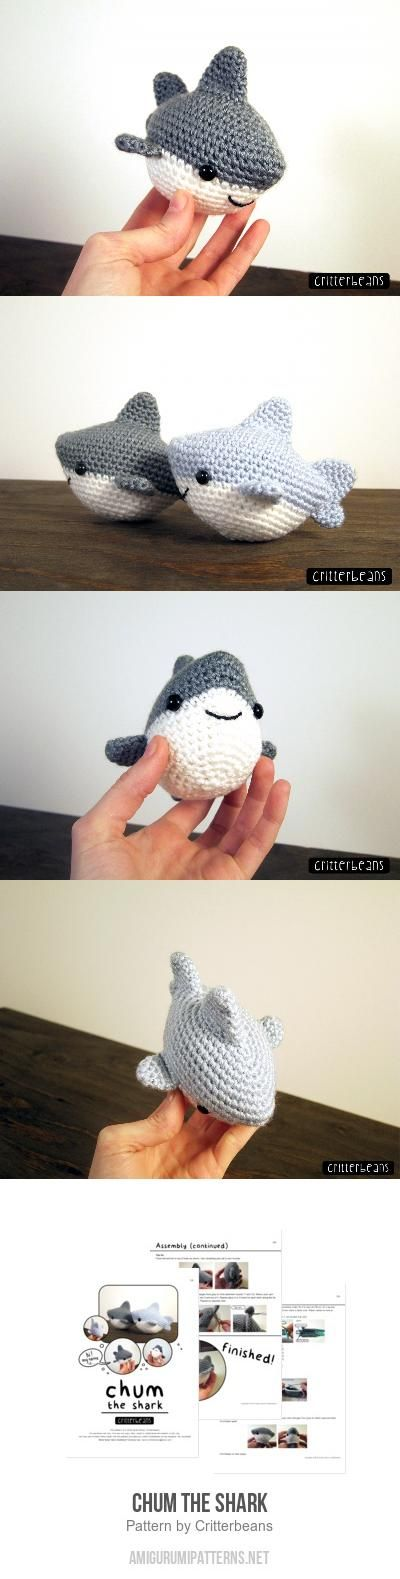 Chum The Shark Amigurumi Pattern, $4